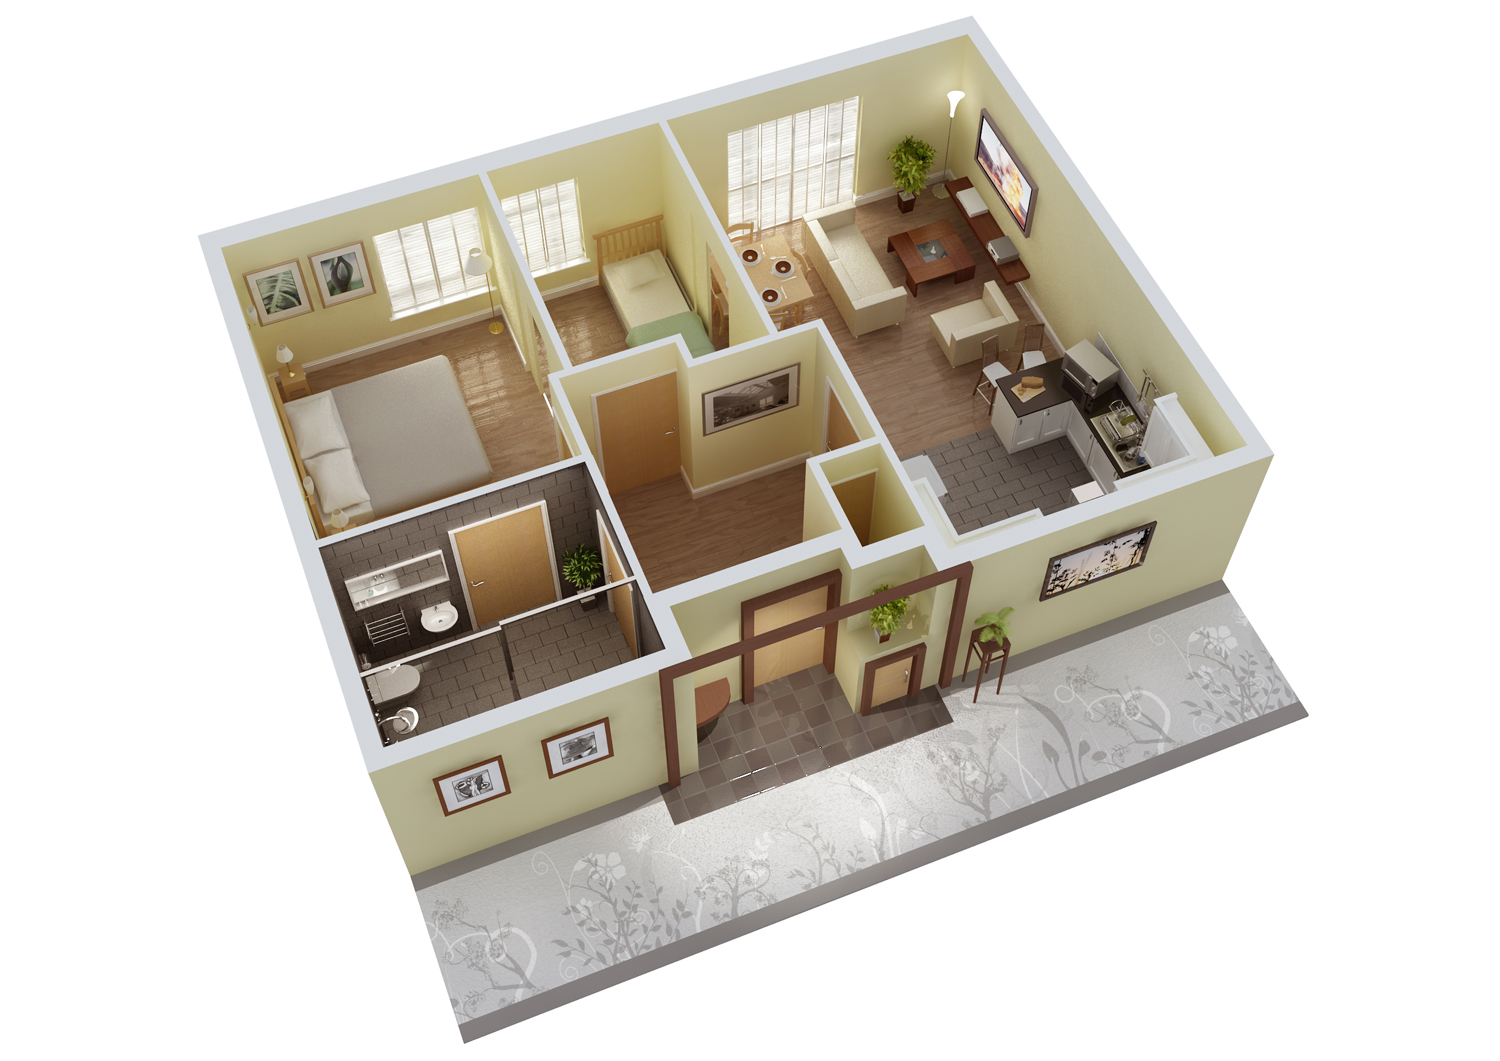 Mathematics resources project 3d floor plan House plan 3d online